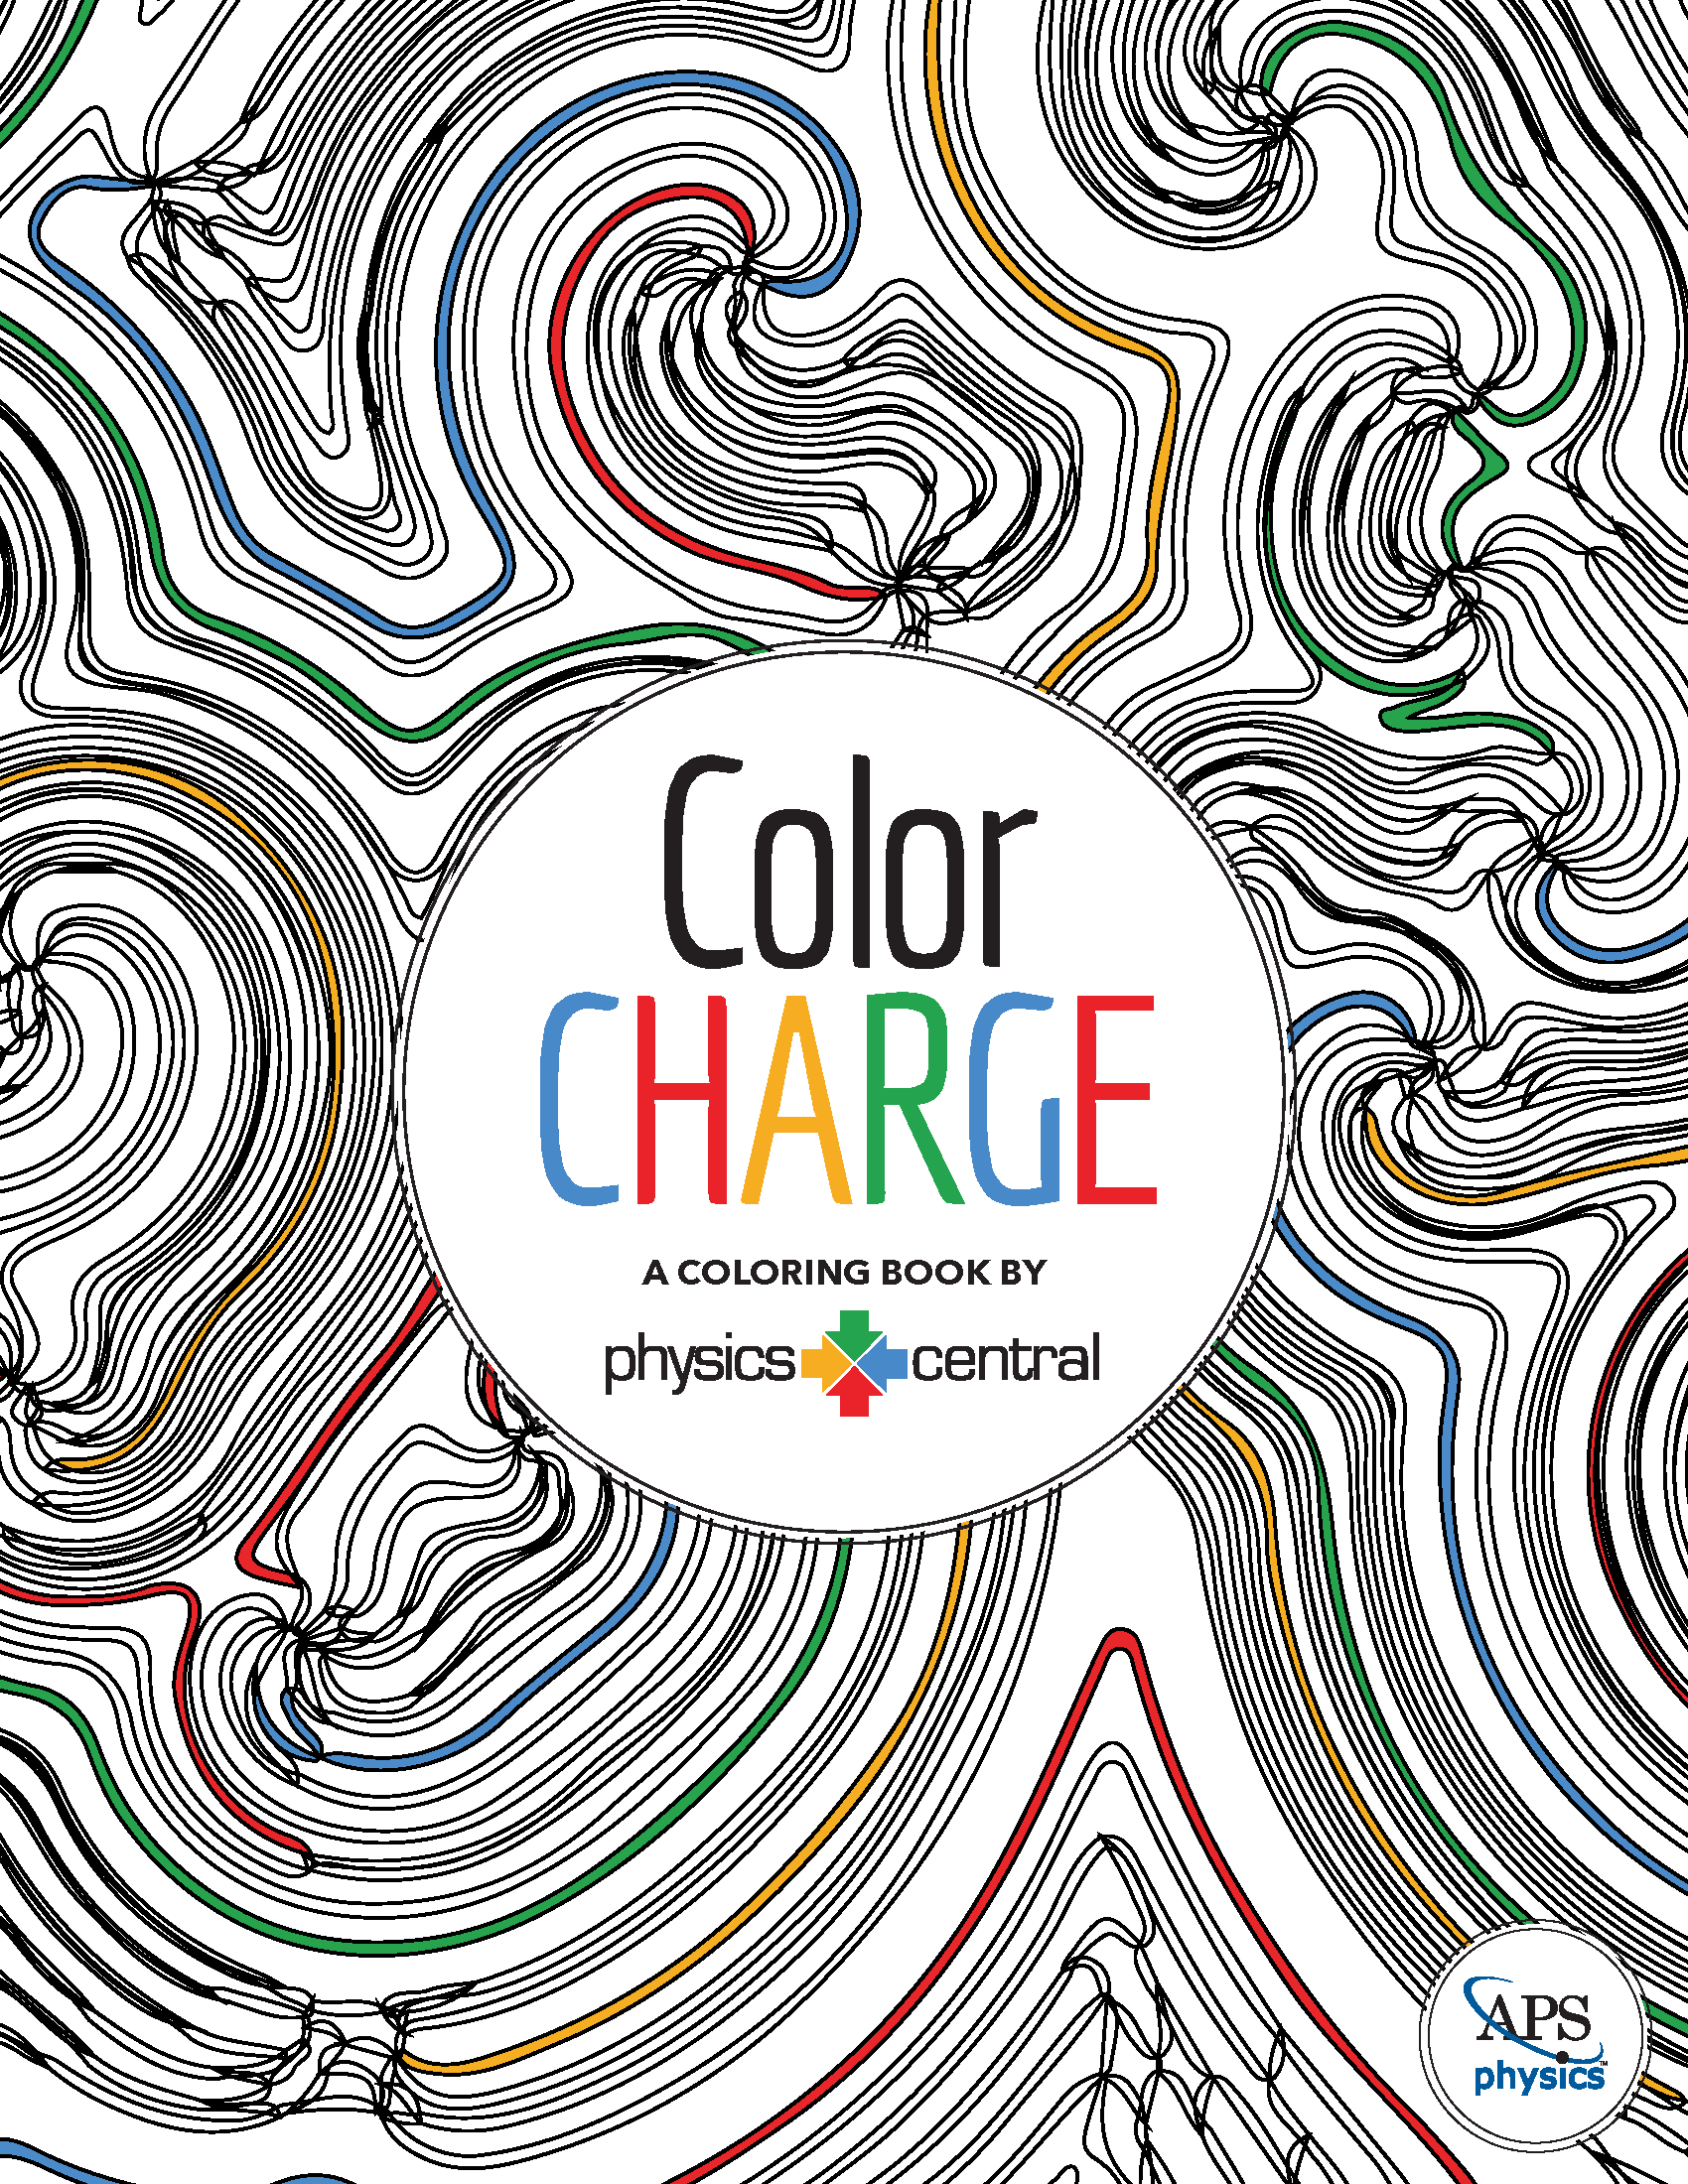 View And Download PhysicsCentrals First Adult Coloring Book Color Charge